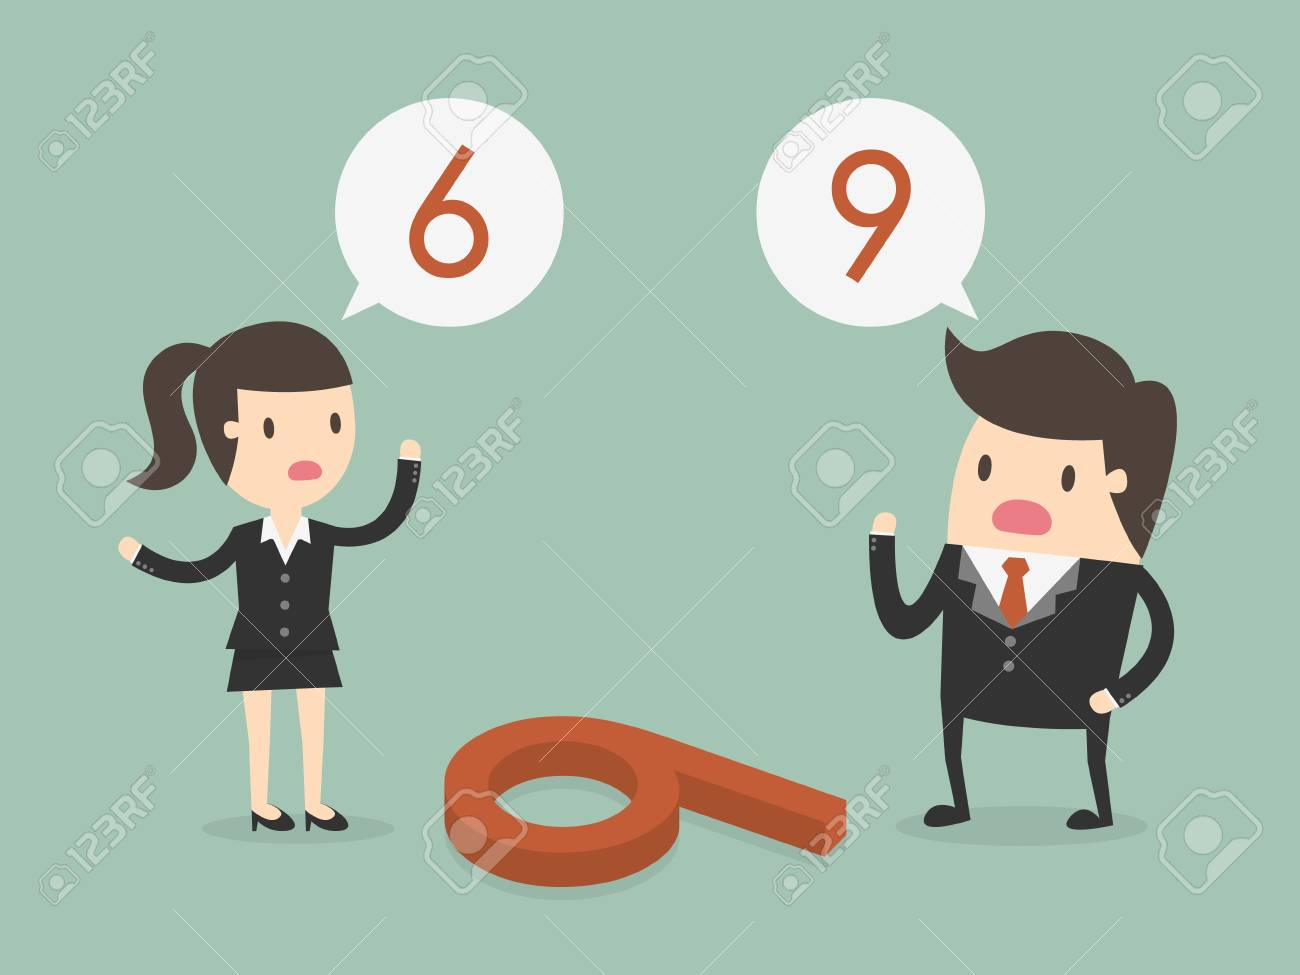 Businessman and woman thinking differently of the number on the floor if 6 or 9 - 96723943